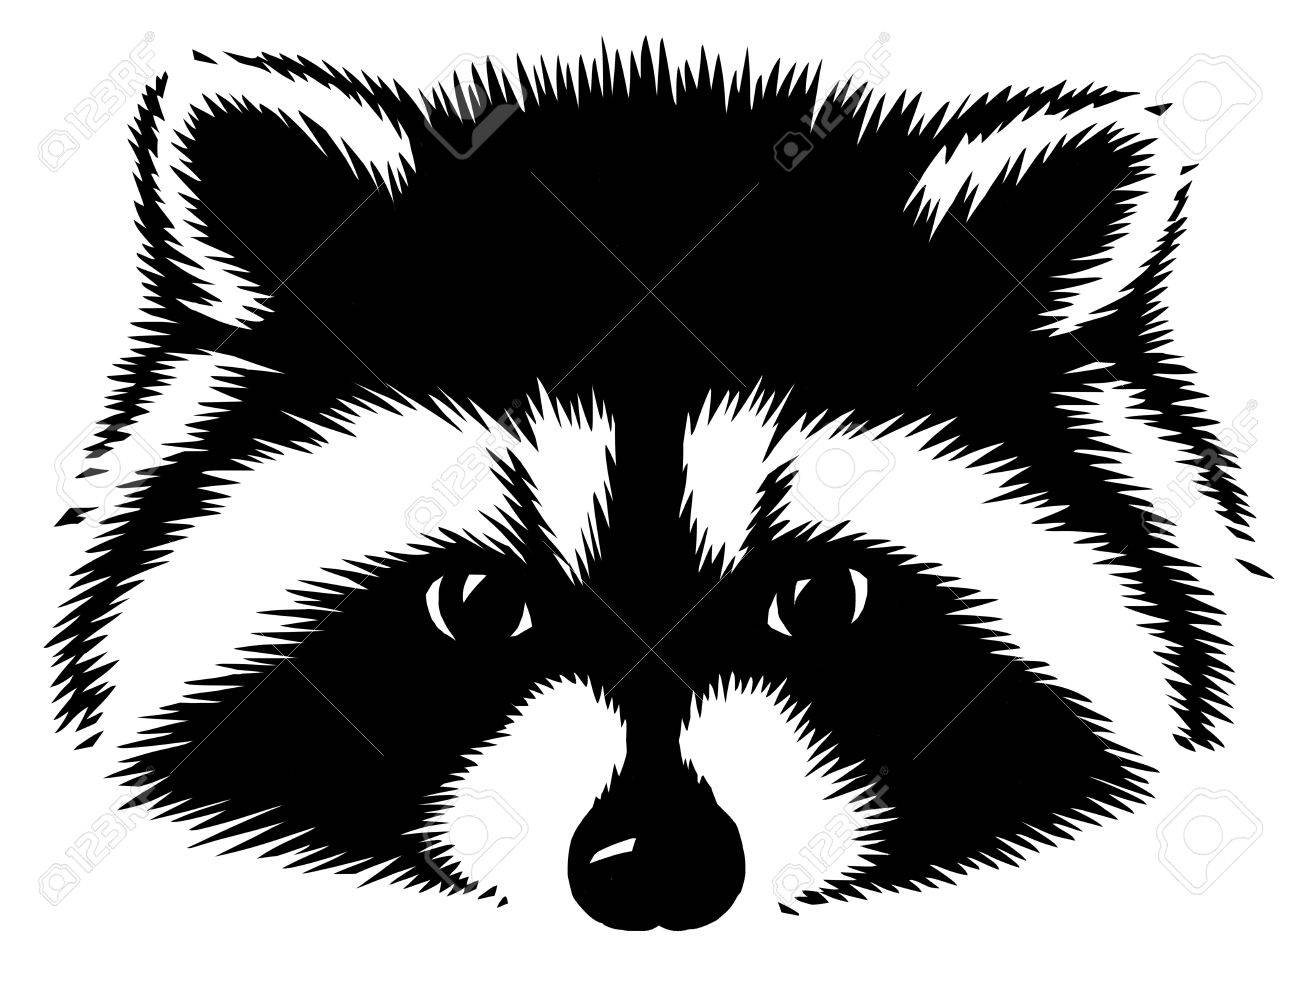 Black and white linear paint draw raccoon illustration stock illustration 74560834